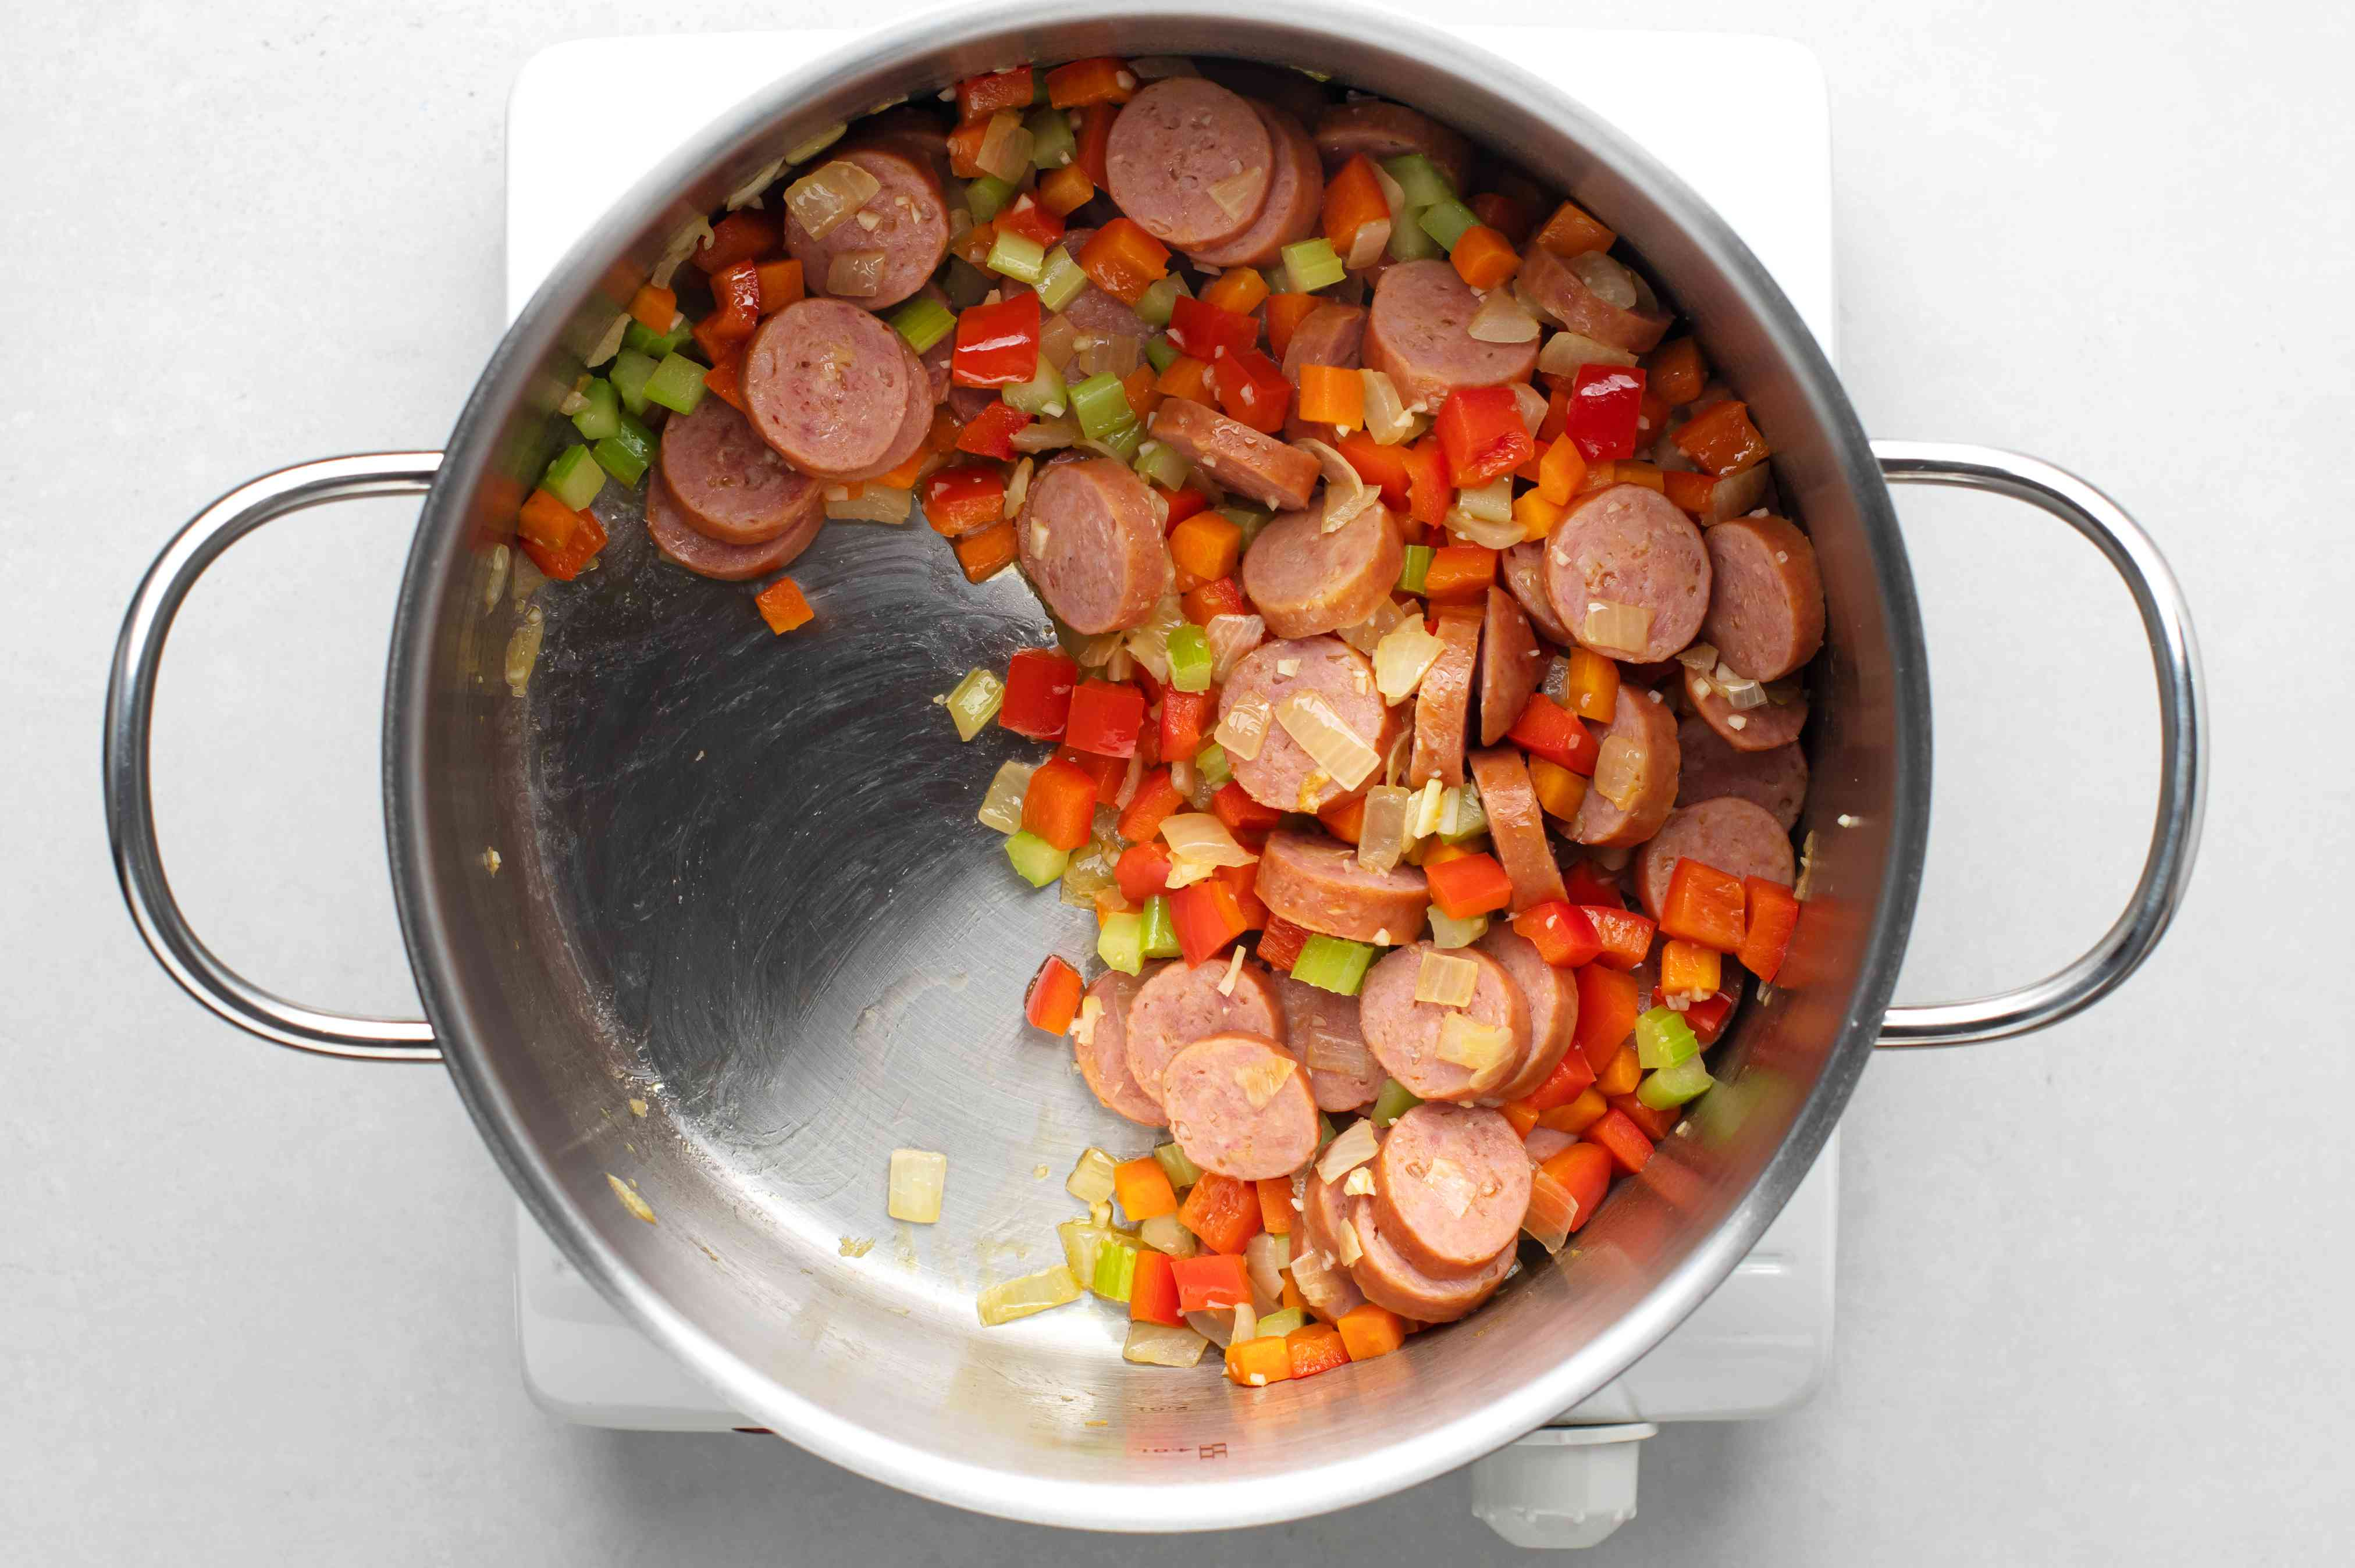 drain the excess fat from the pot